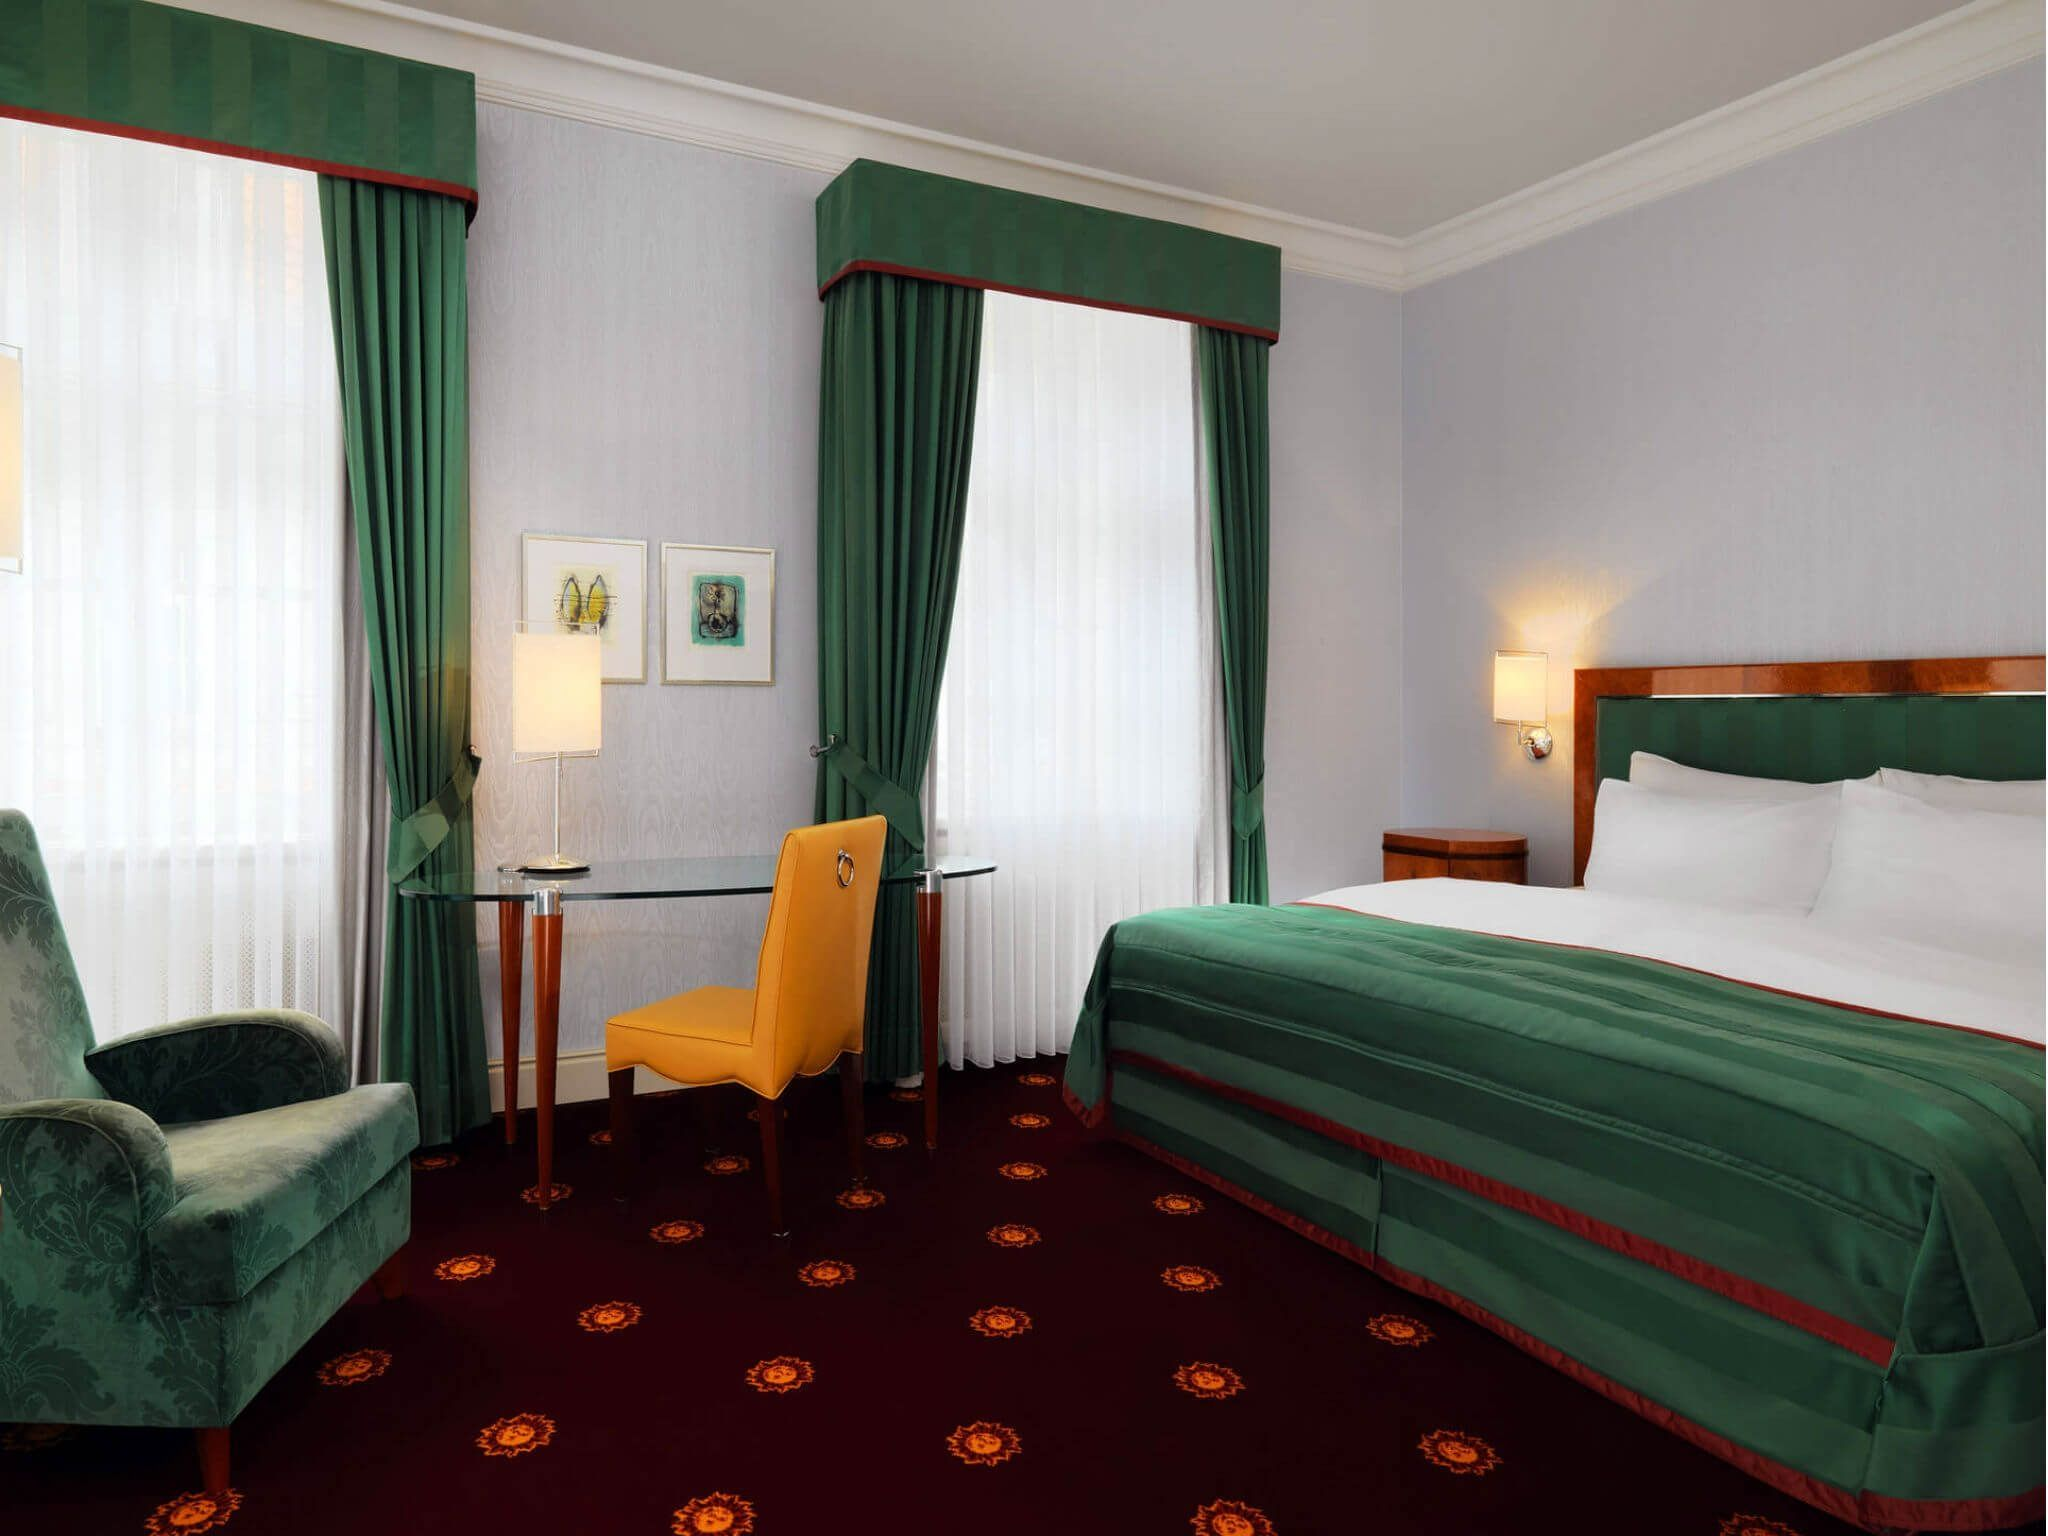 Hotel Leipzig - Deluxe Rooms at Hotel Fürstenhof